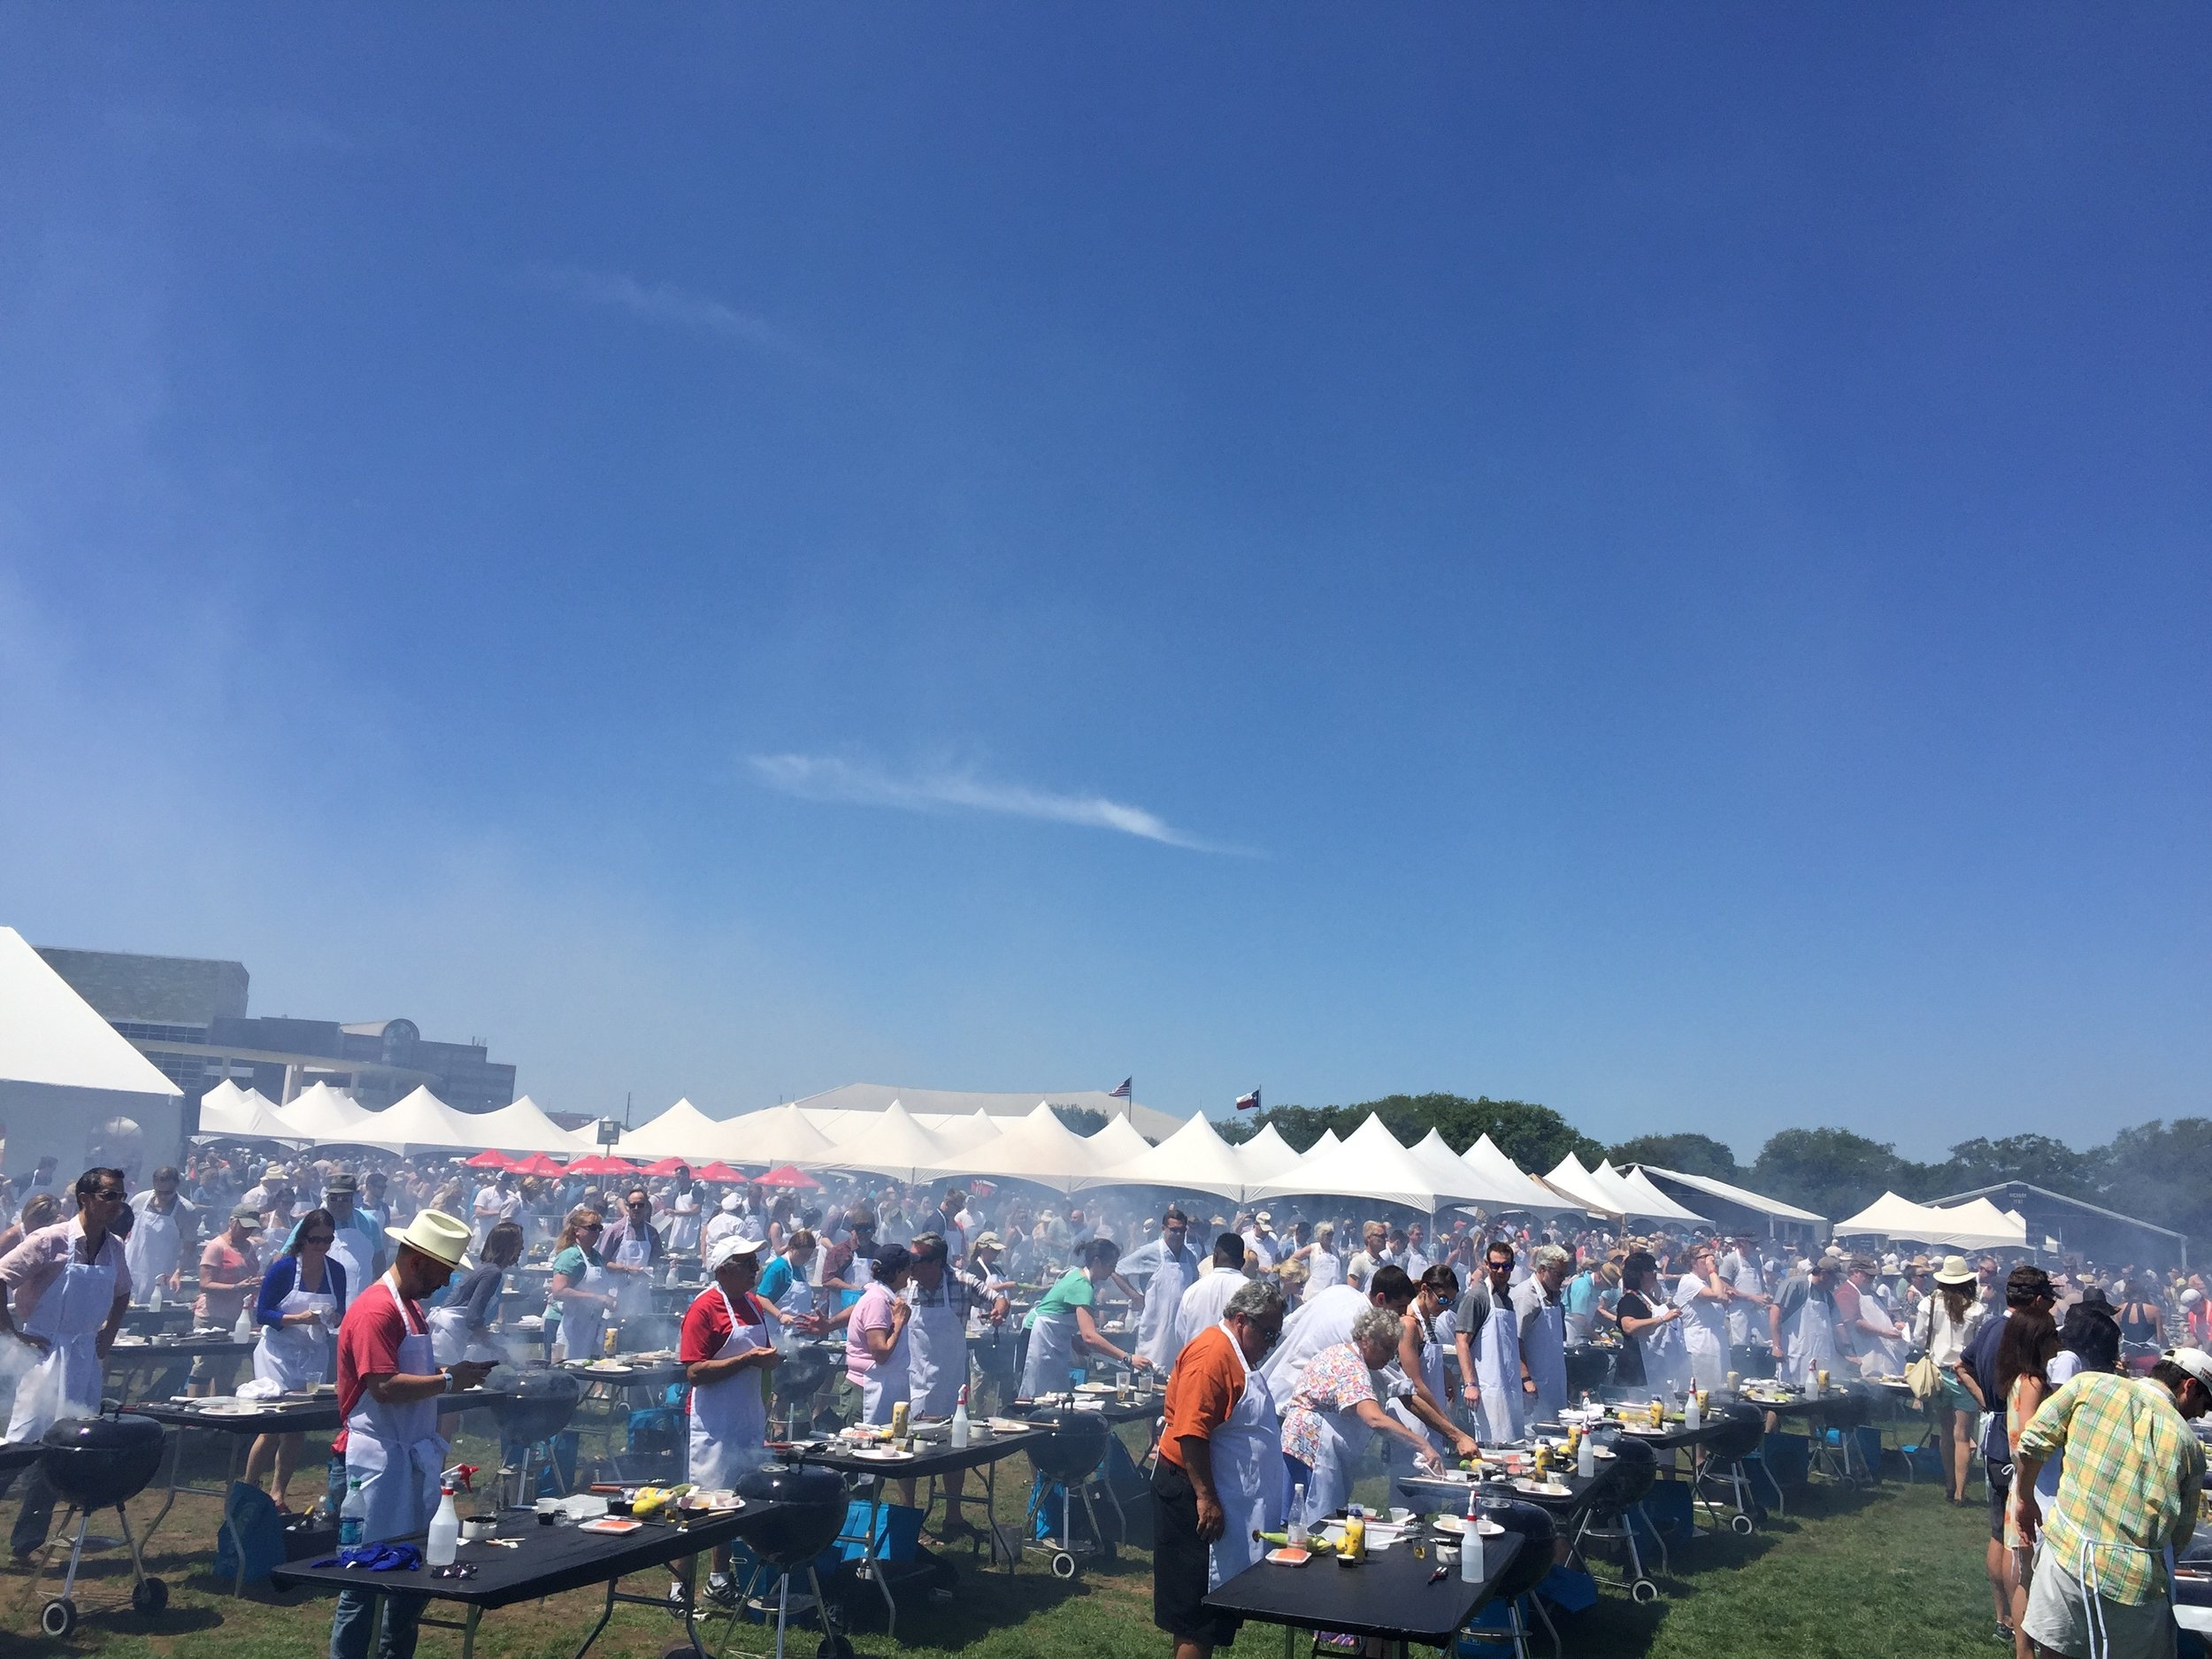 Austin Food + Wine Festival 2014 & 2015    (chef talent & culinary operations management)   Alongside 3 cooking demo stages, 4 fire pit sampling tents, a grand taste and wine classes, 400 guests participated in a celebrity-chef led grilling class each day of the festival.